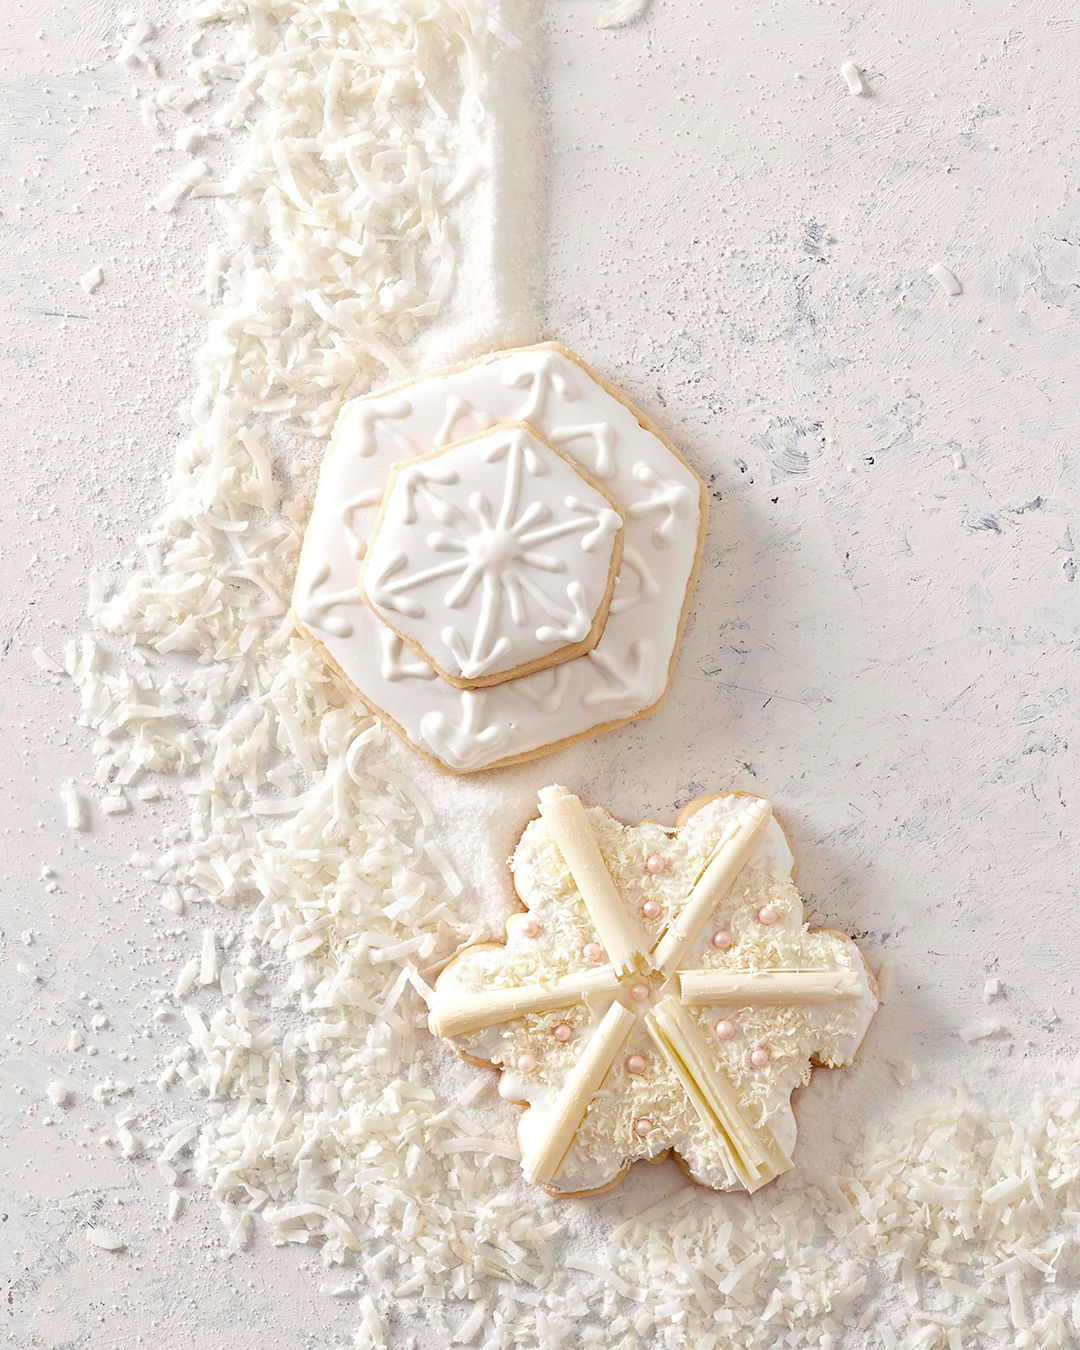 Almond Sugar Cookie Snowflakes on white surface with coconut shreds